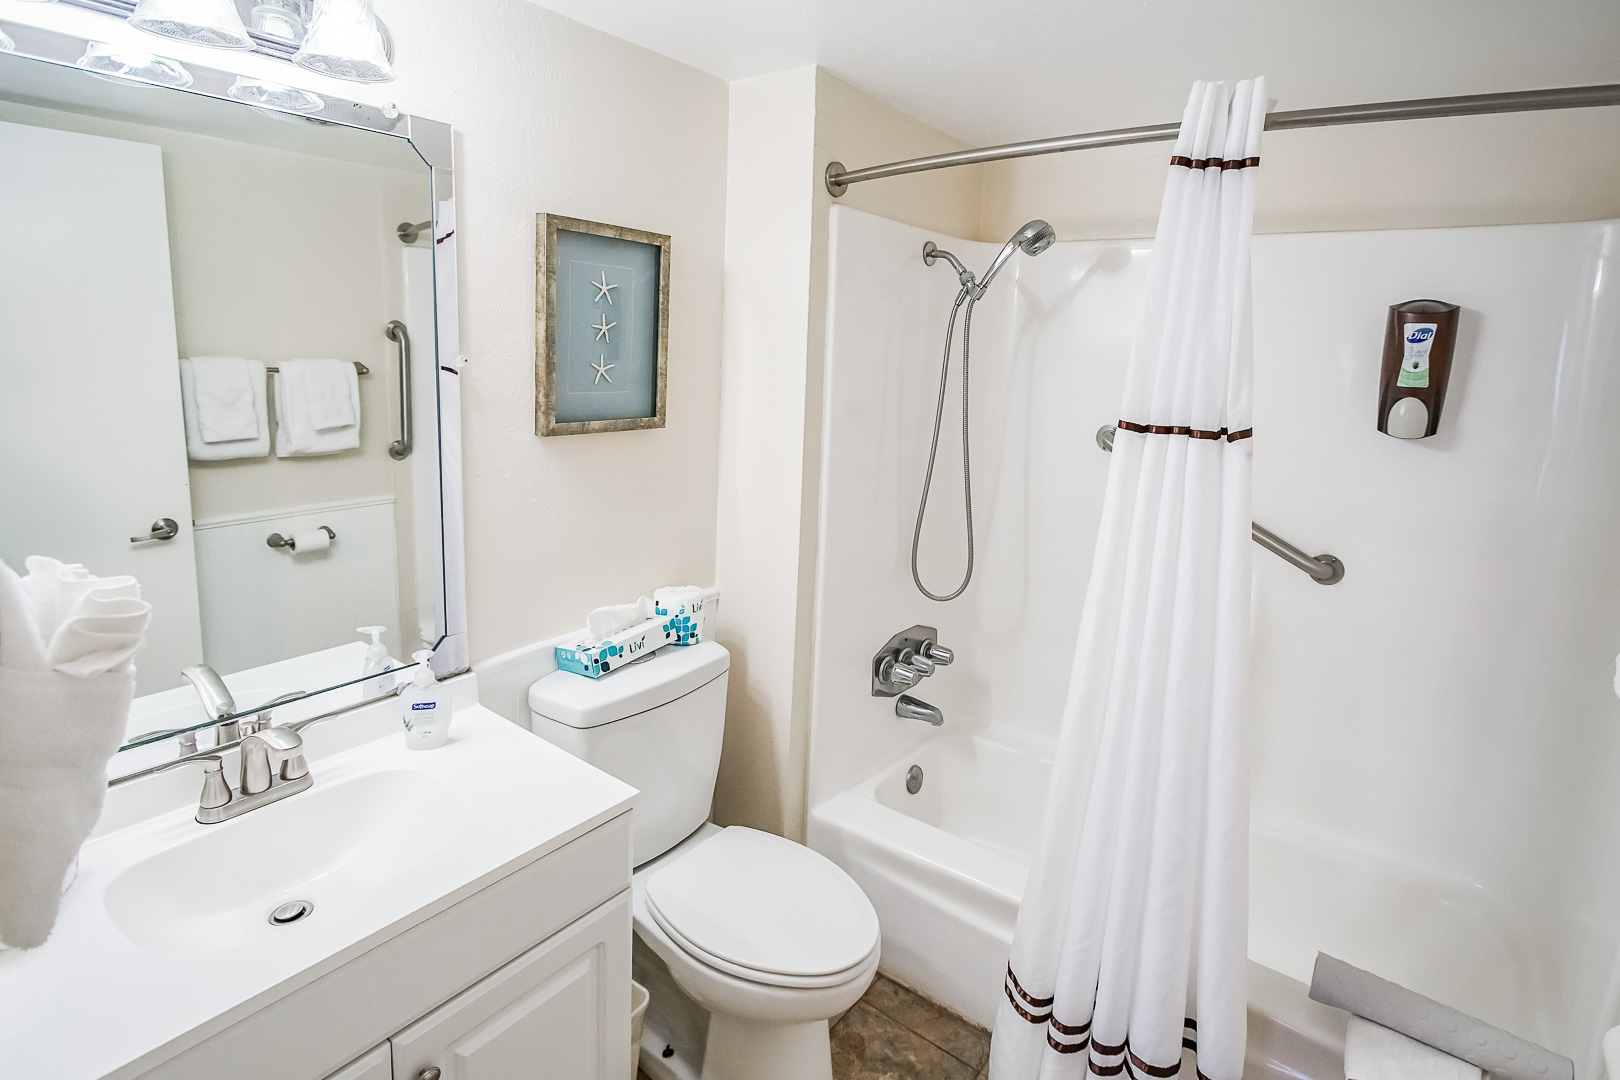 A clean bathroom at VRI's Puente Vista in Texas.